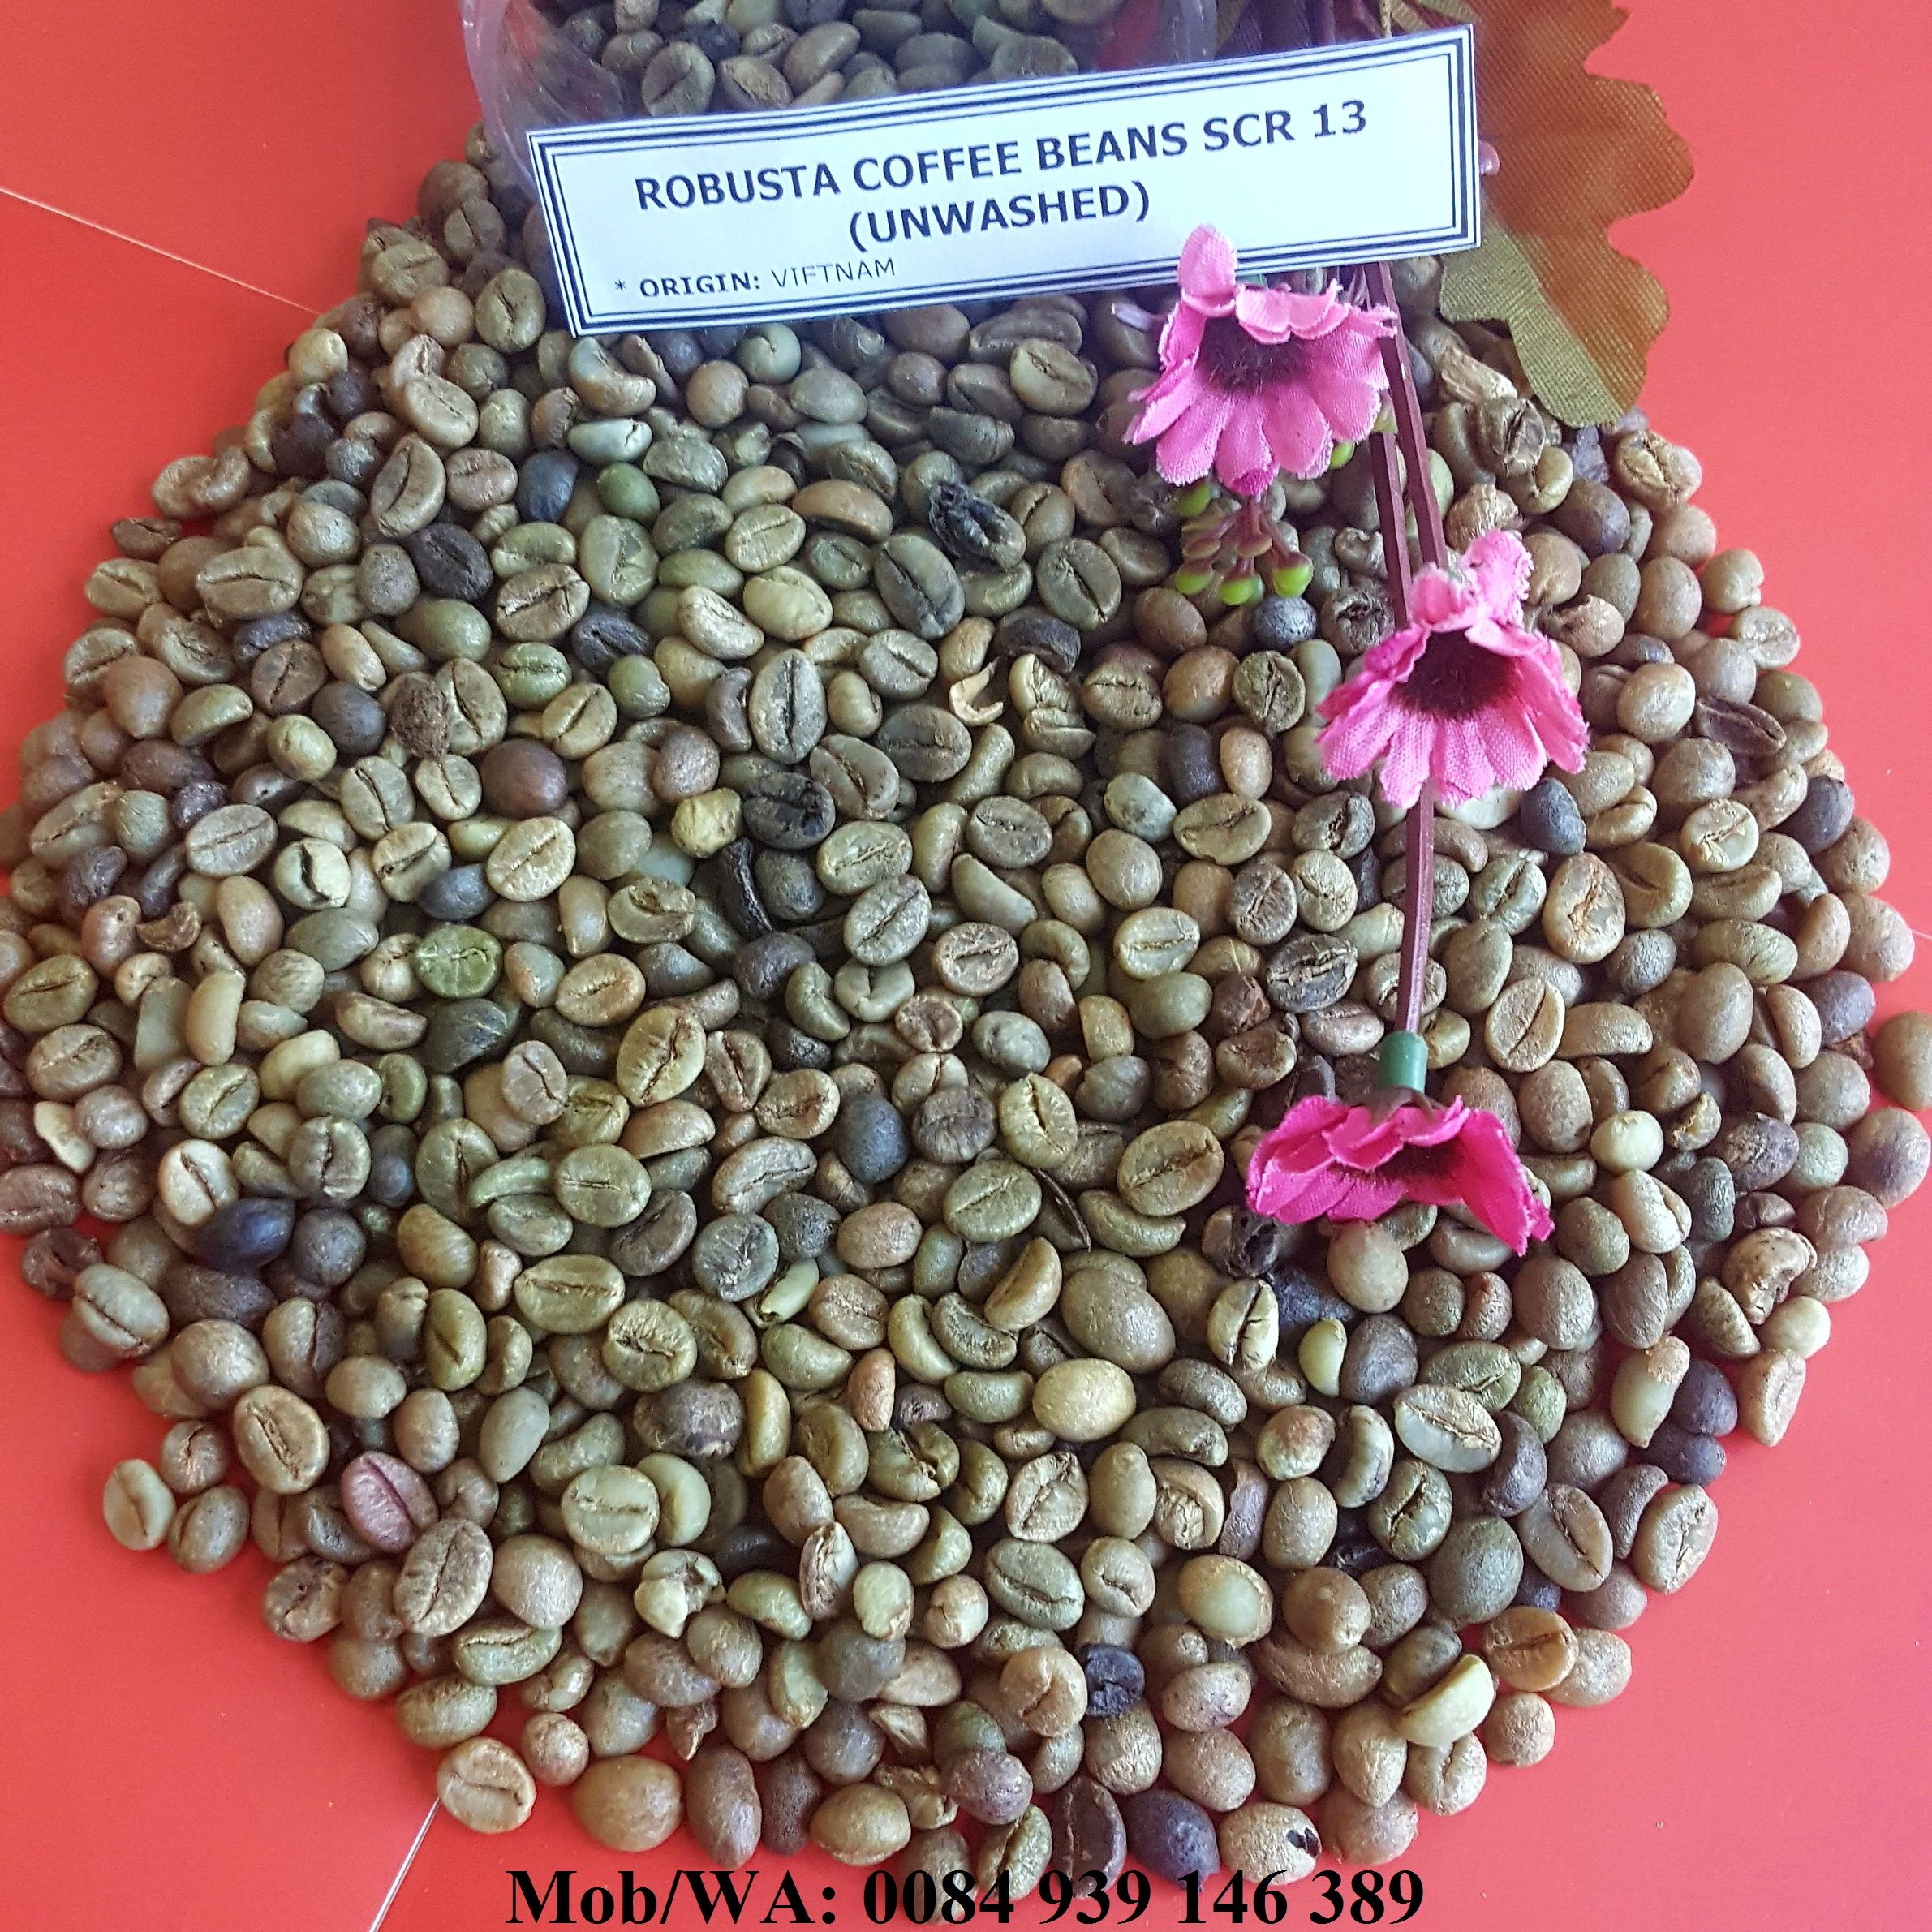 UNWASHED ROBUSTA COFFEE BEANS SCR 13 - HIGH QUALITY - GOOD PRICE89